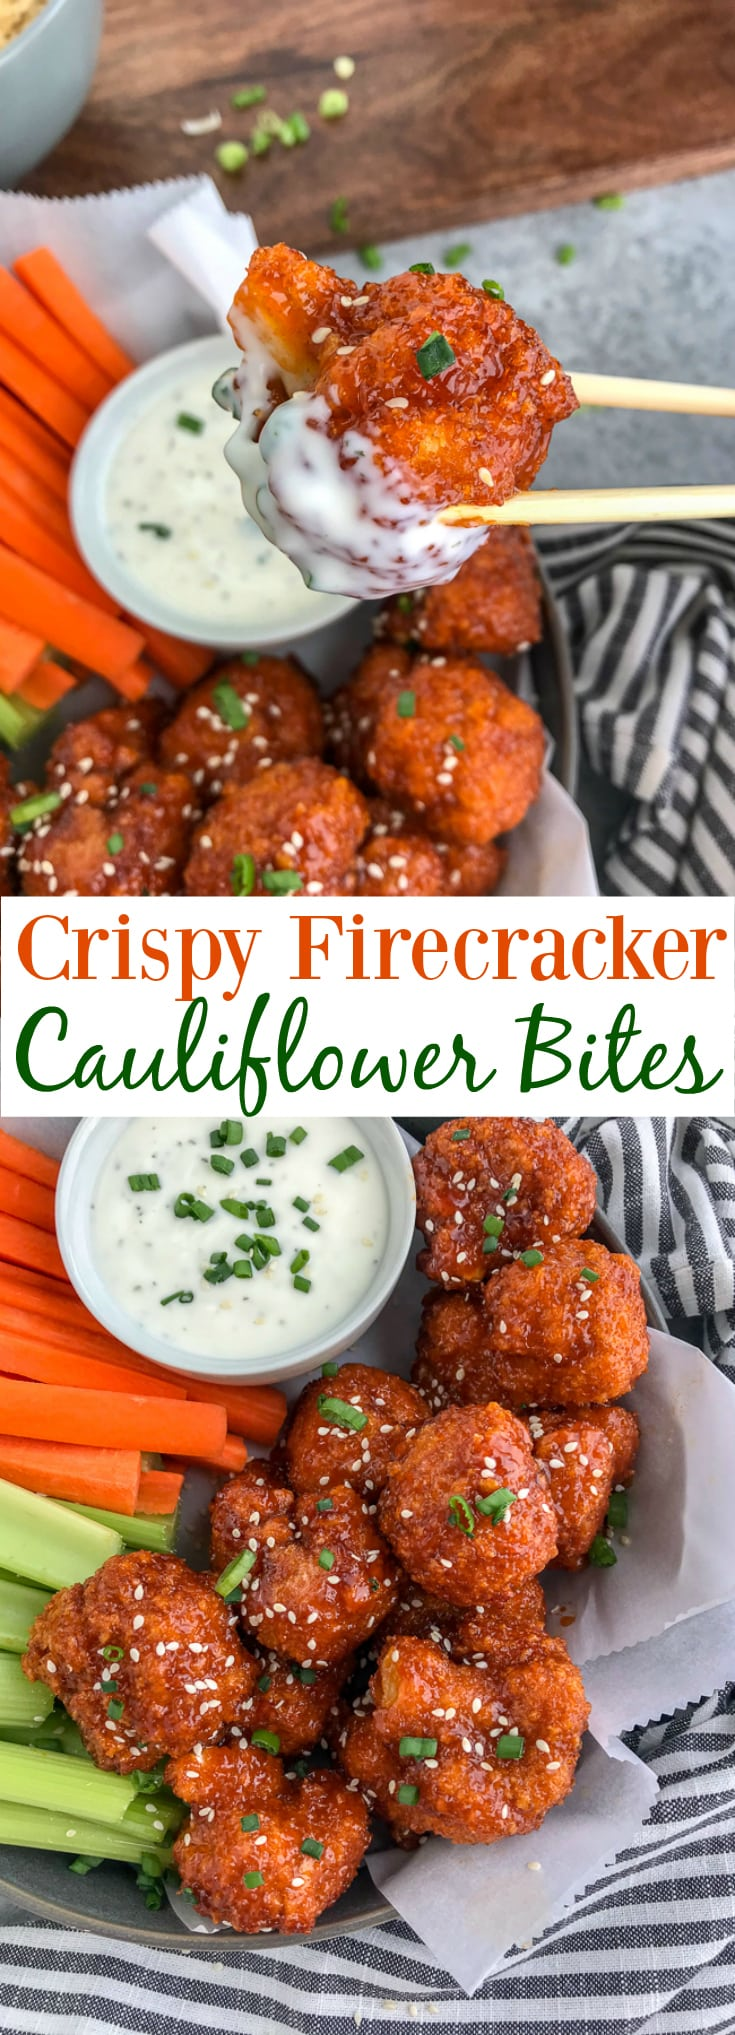 Cauliflower florets battered and baked until super crispy and then tossed in the an incredible sweet and spicy sauce. Sticky, crispy and so easy to make, you'll be throwing your takeout menus away! #firecracker #firecrackercauliflower #cauliflower #takeout | https://withpeanutbutterontop.com